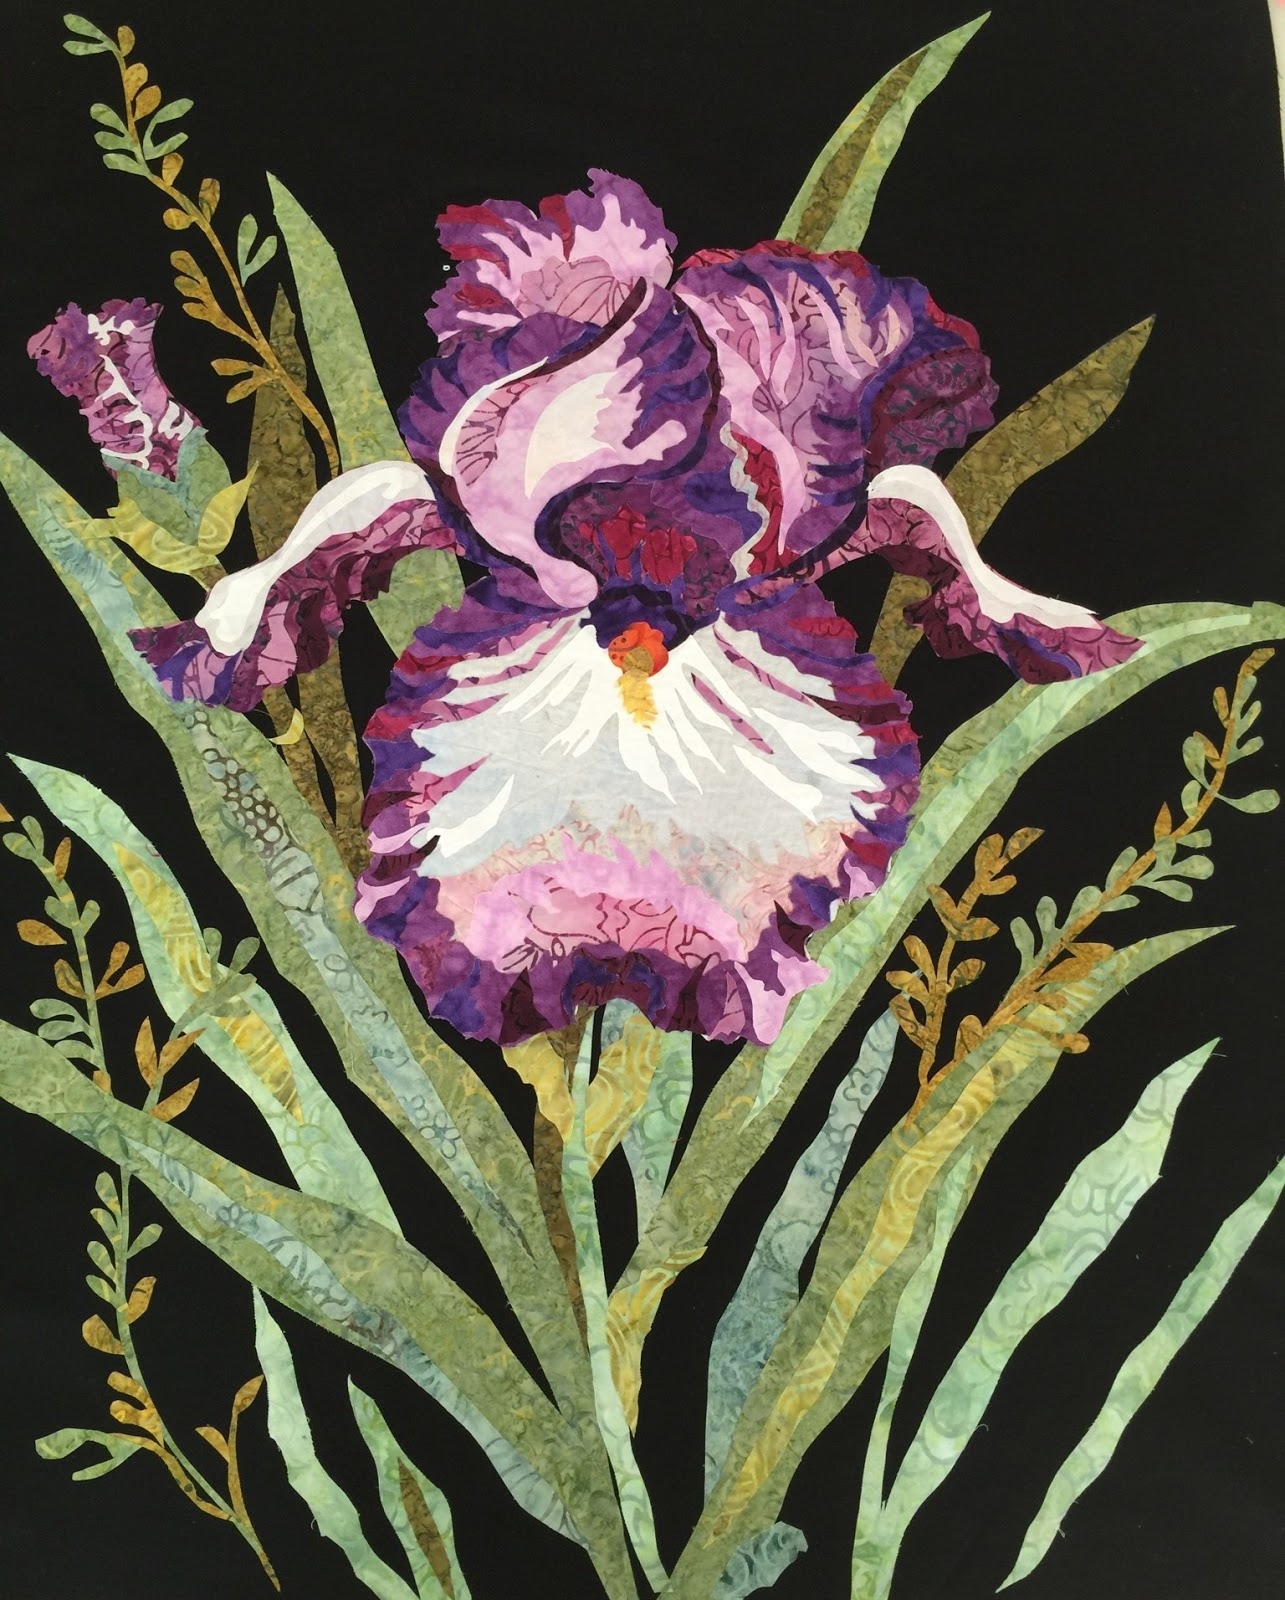 Melindas cutting garden quilting the iris now many of you are getting ready to quilt your flower i wanted to pass on some tip and tricks to give you some ideas on how to finishing your iris izmirmasajfo